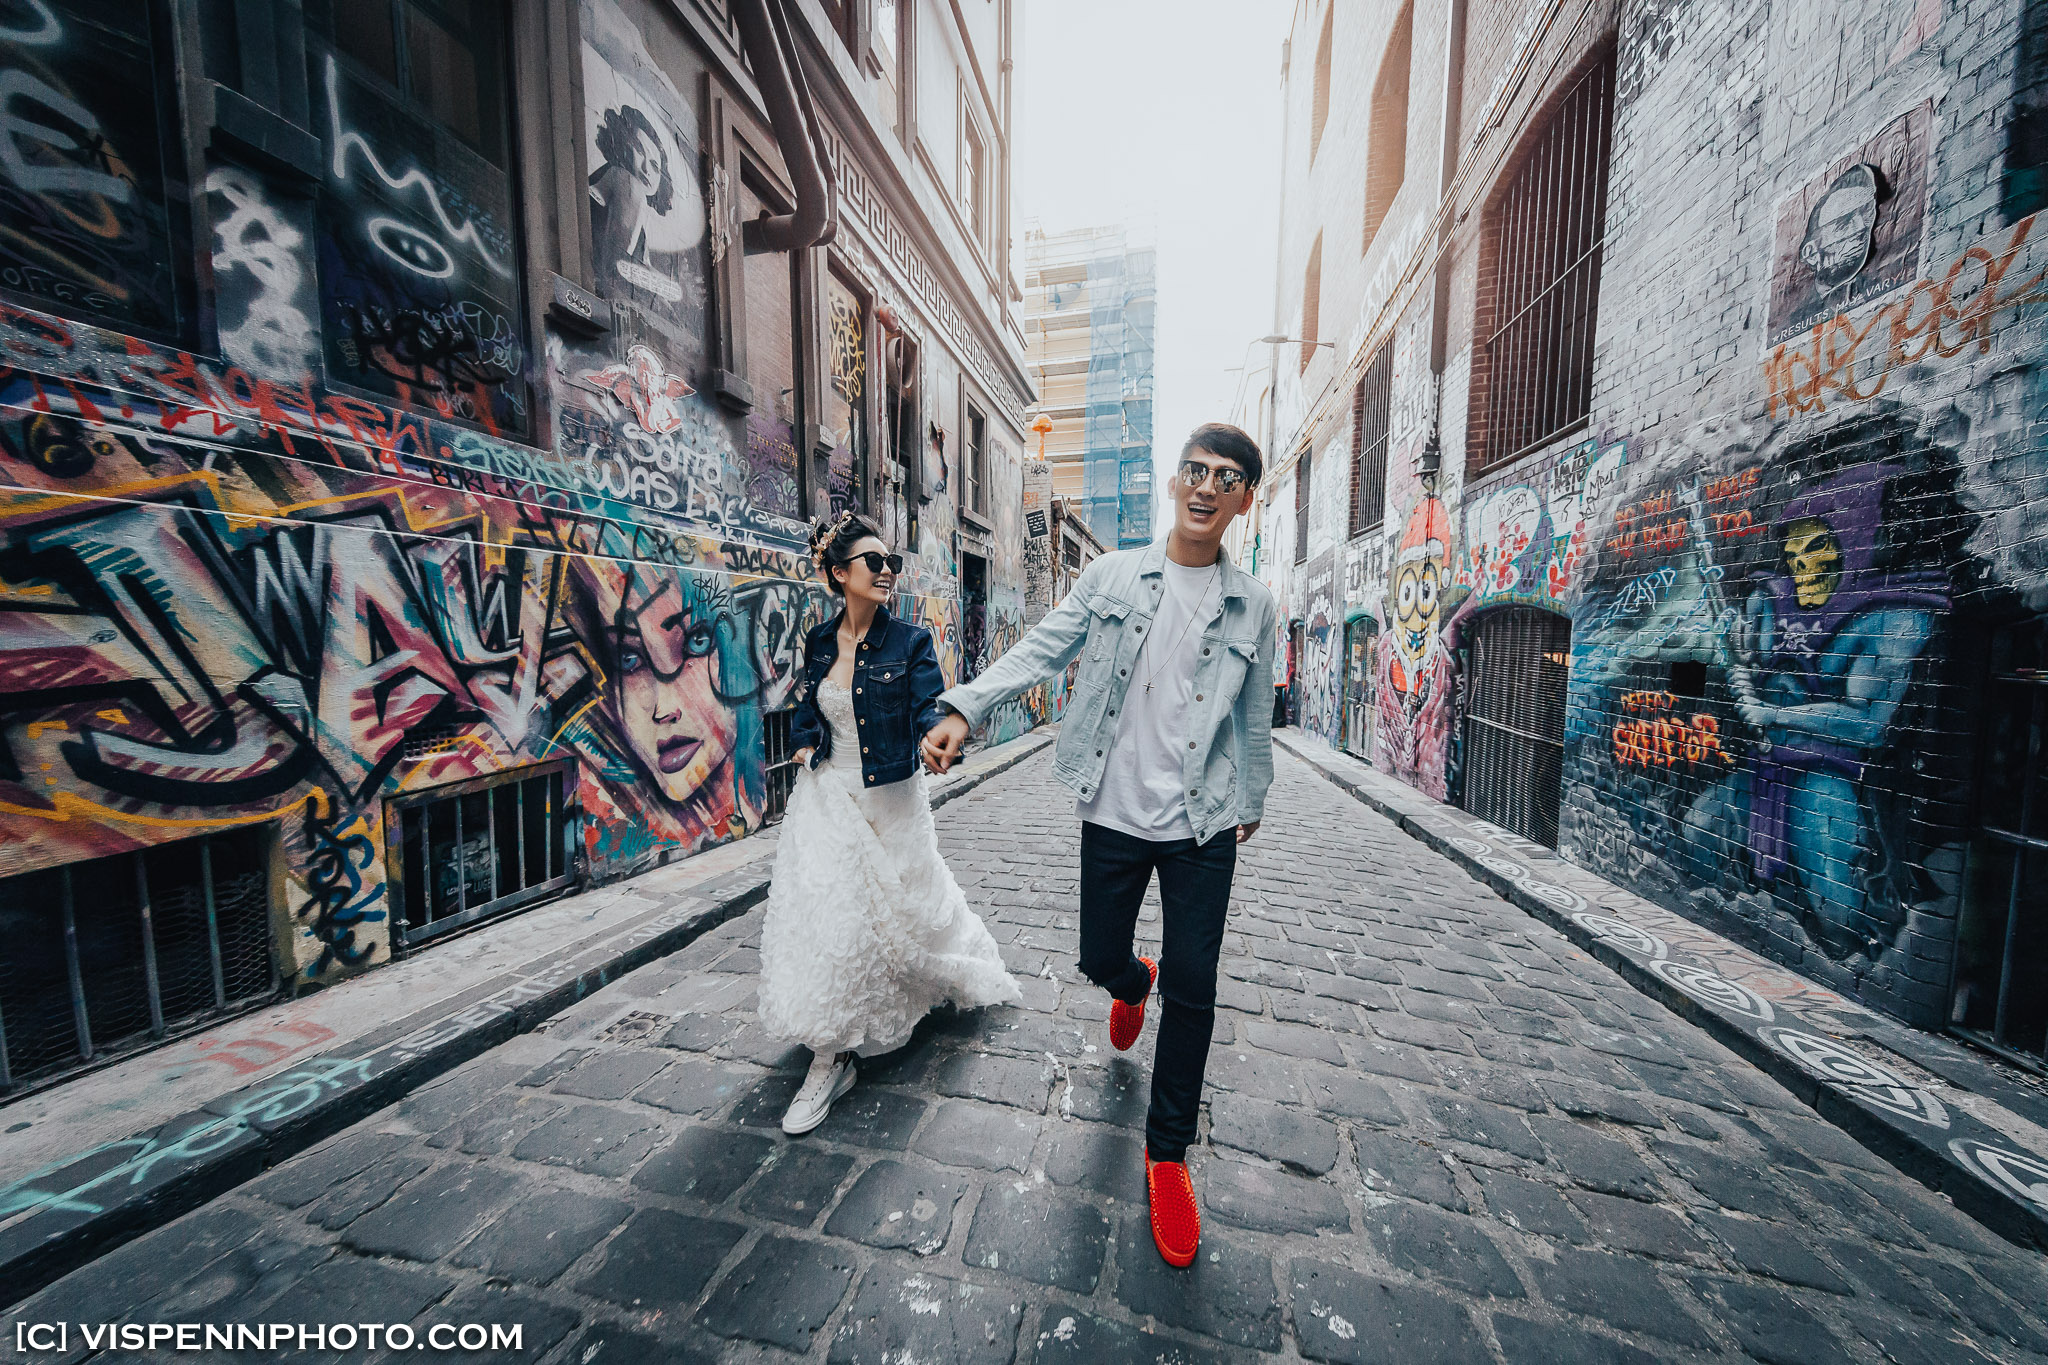 PRE WEDDING Photography Melbourne 5D4 2793